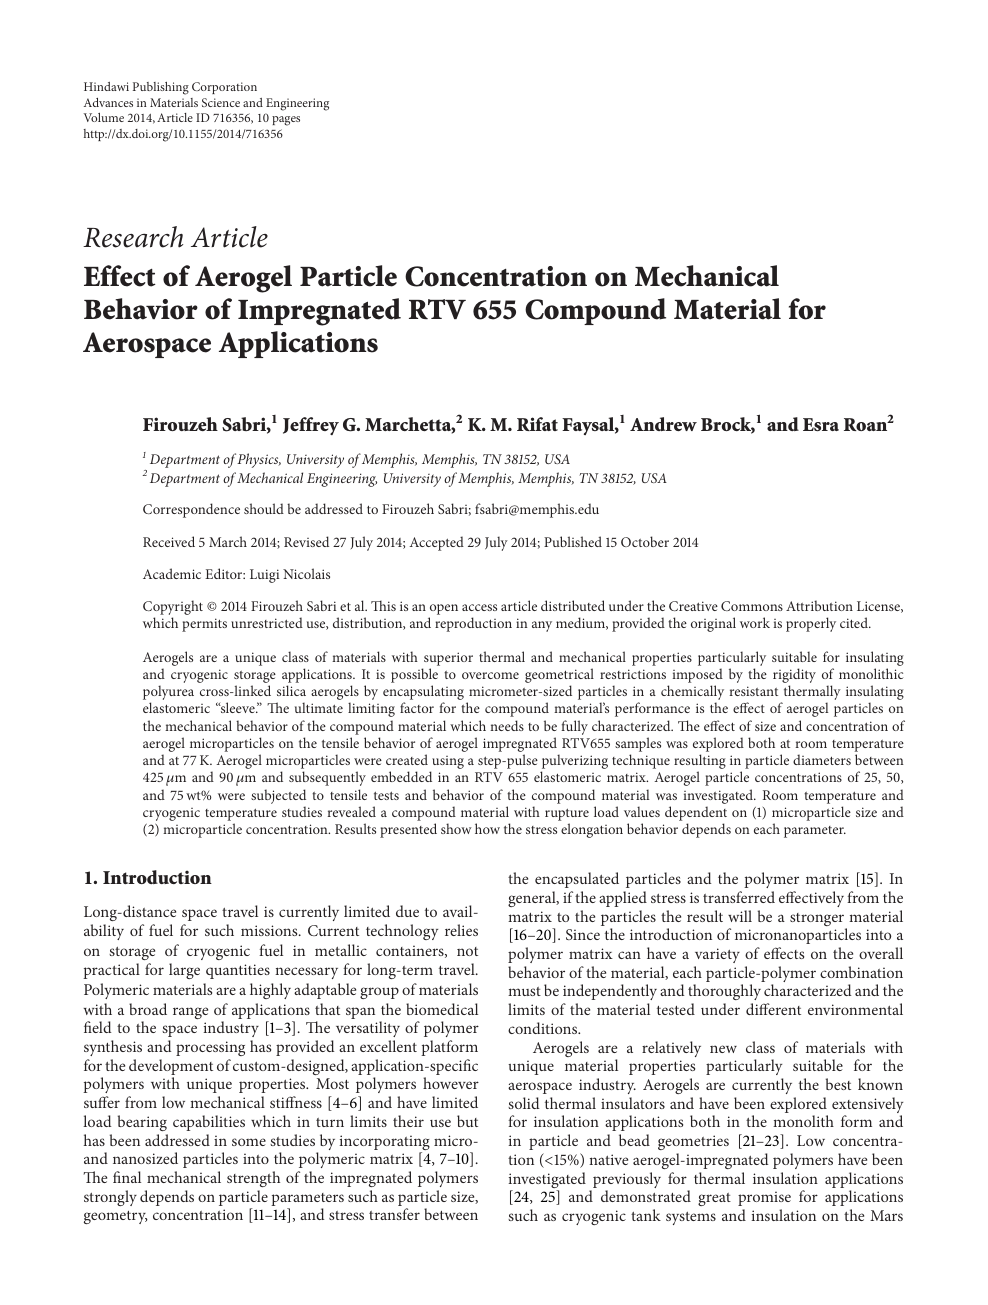 Effect of Aerogel Particle Concentration on Mechanical